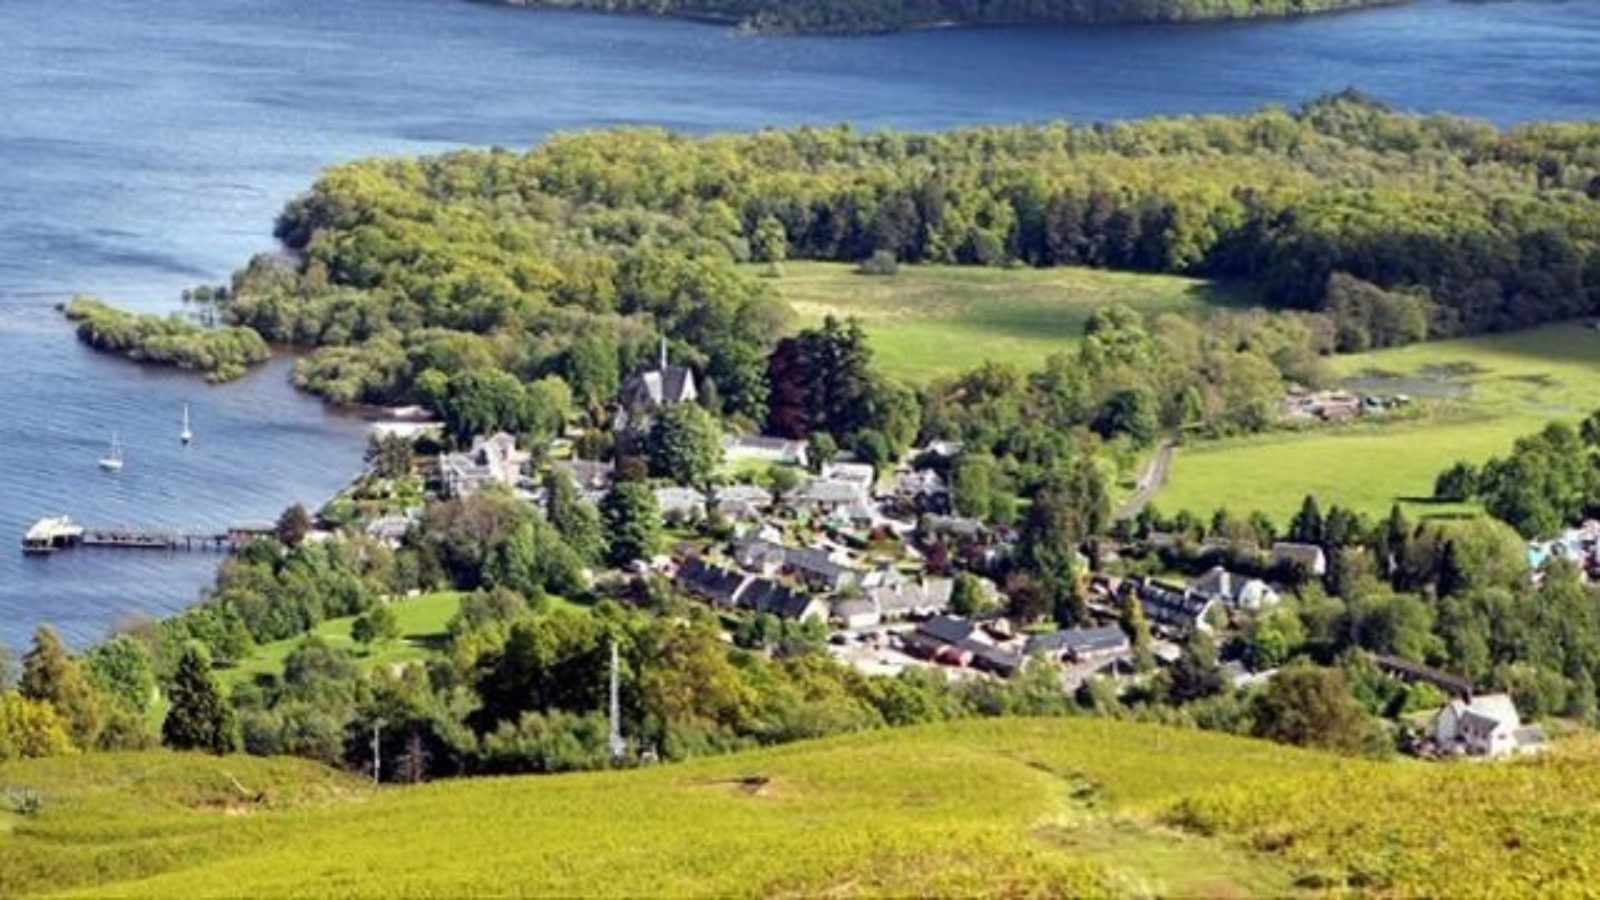 Savills presents a very rare opportunity to develop 29 new homes across six sites in the Loch Lomond and Trossachs National Park